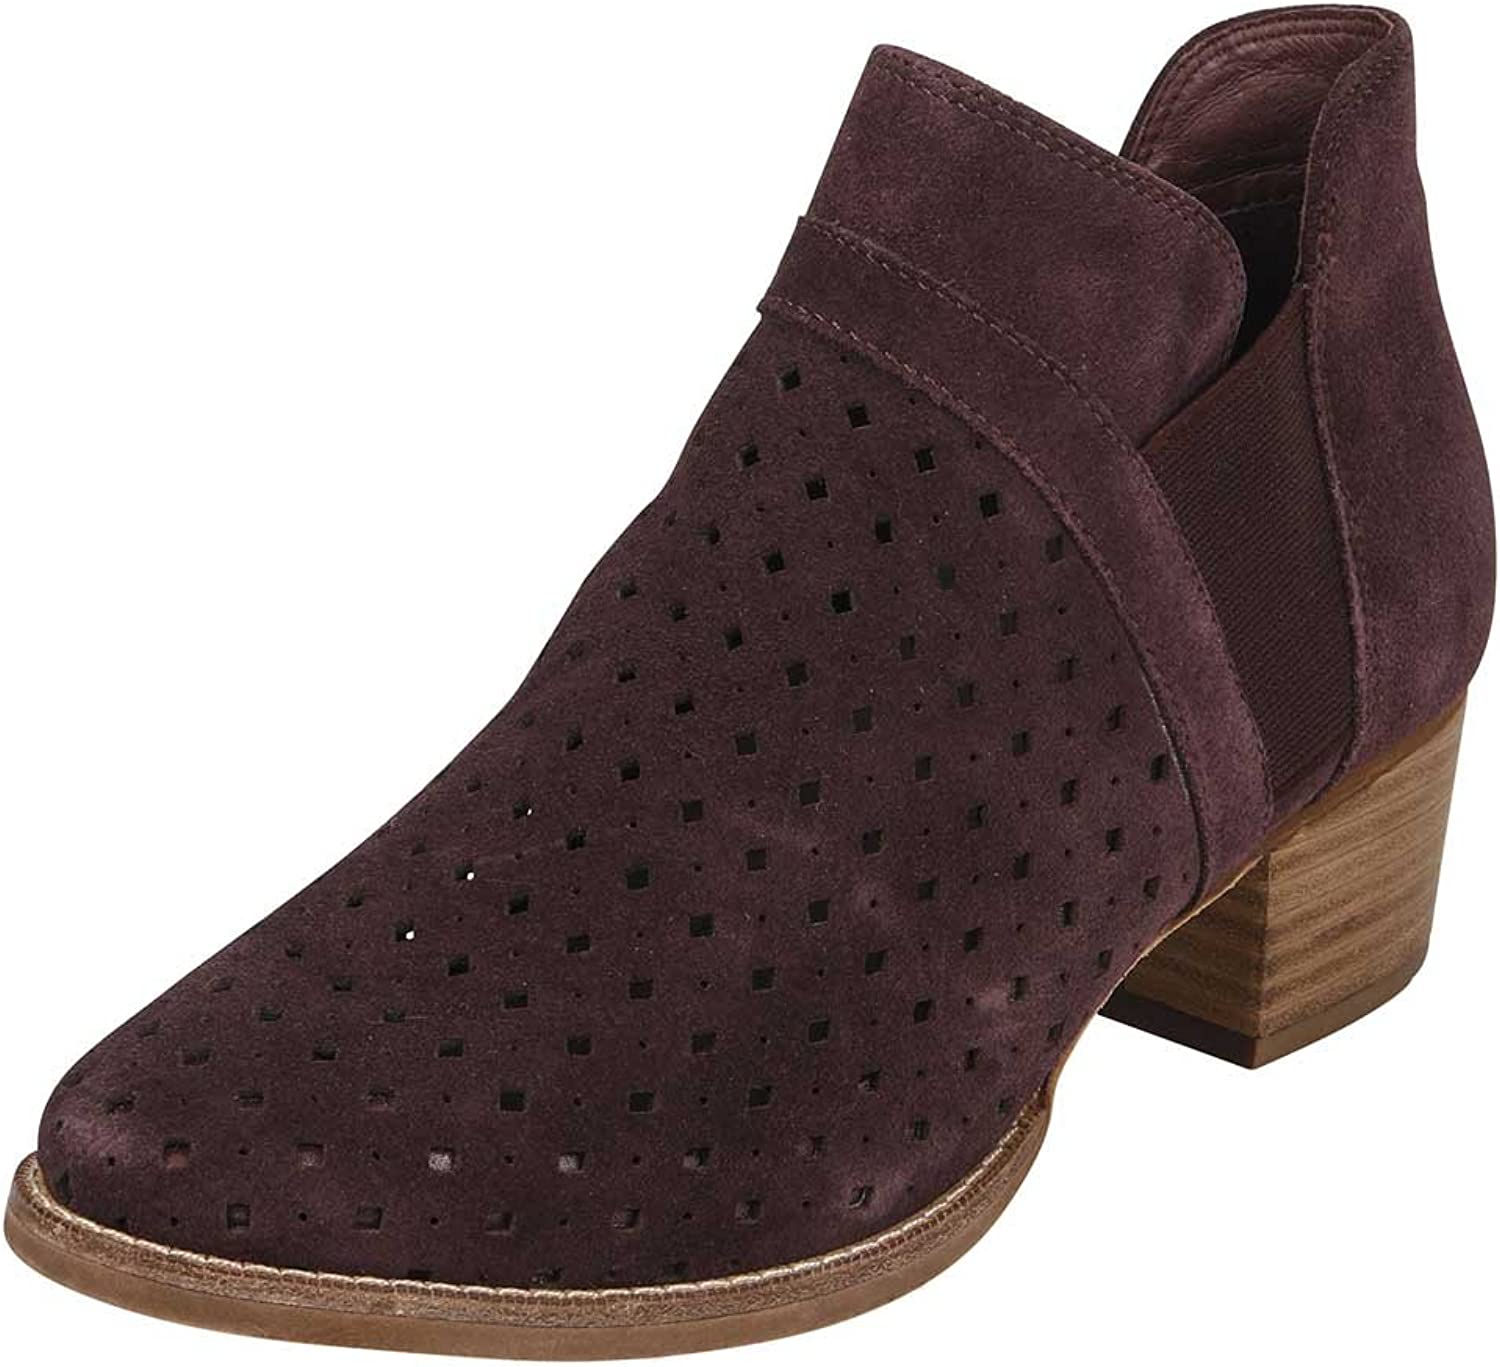 Earth Womens Keren Plum Boot - 7.5 M